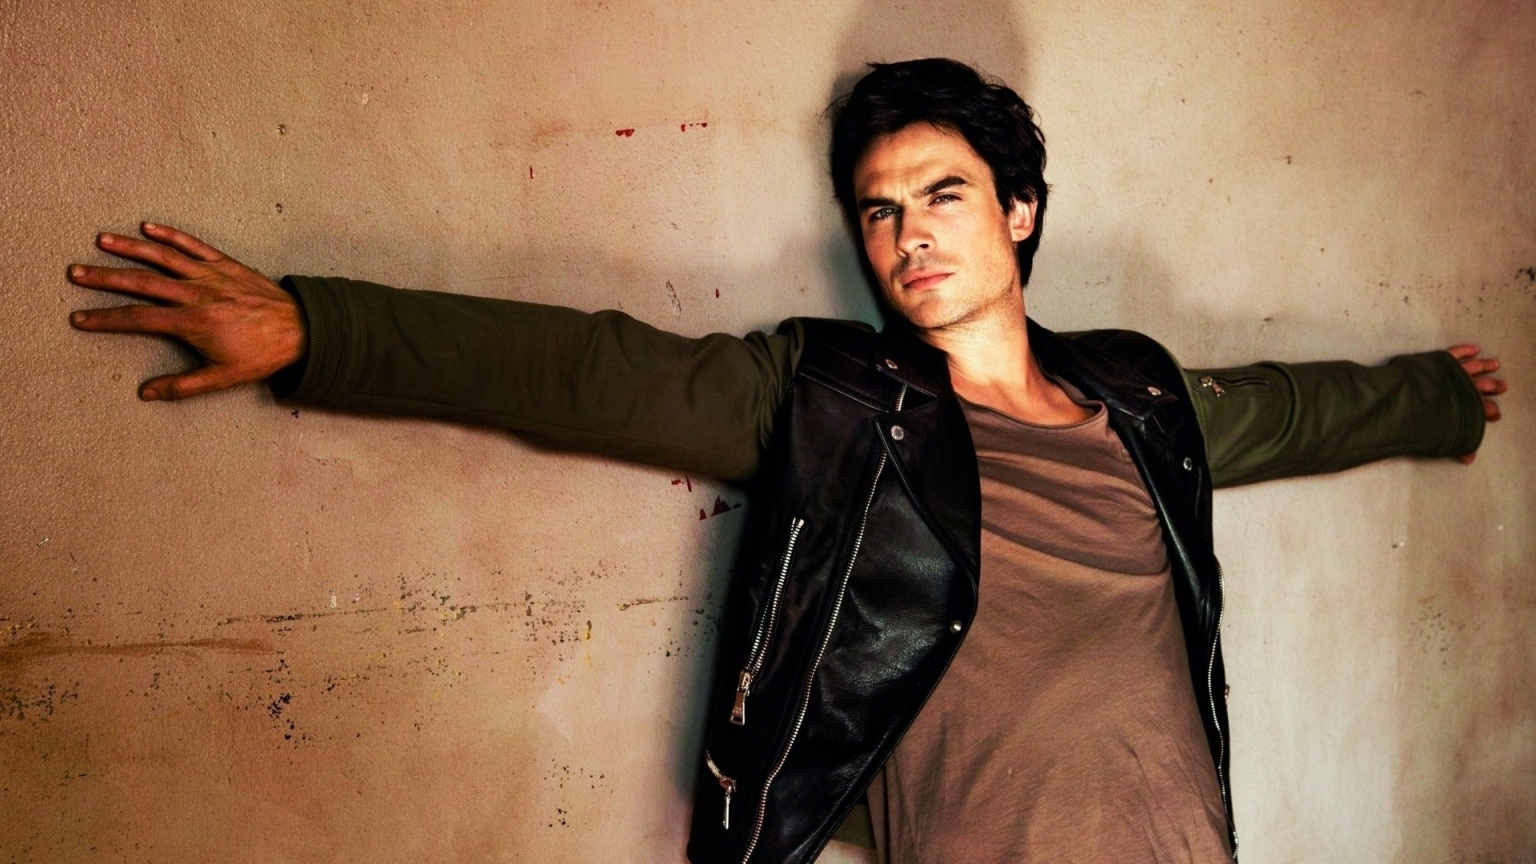 Ian Somerhalder Photo Session for 1536 x 864 HDTV resolution